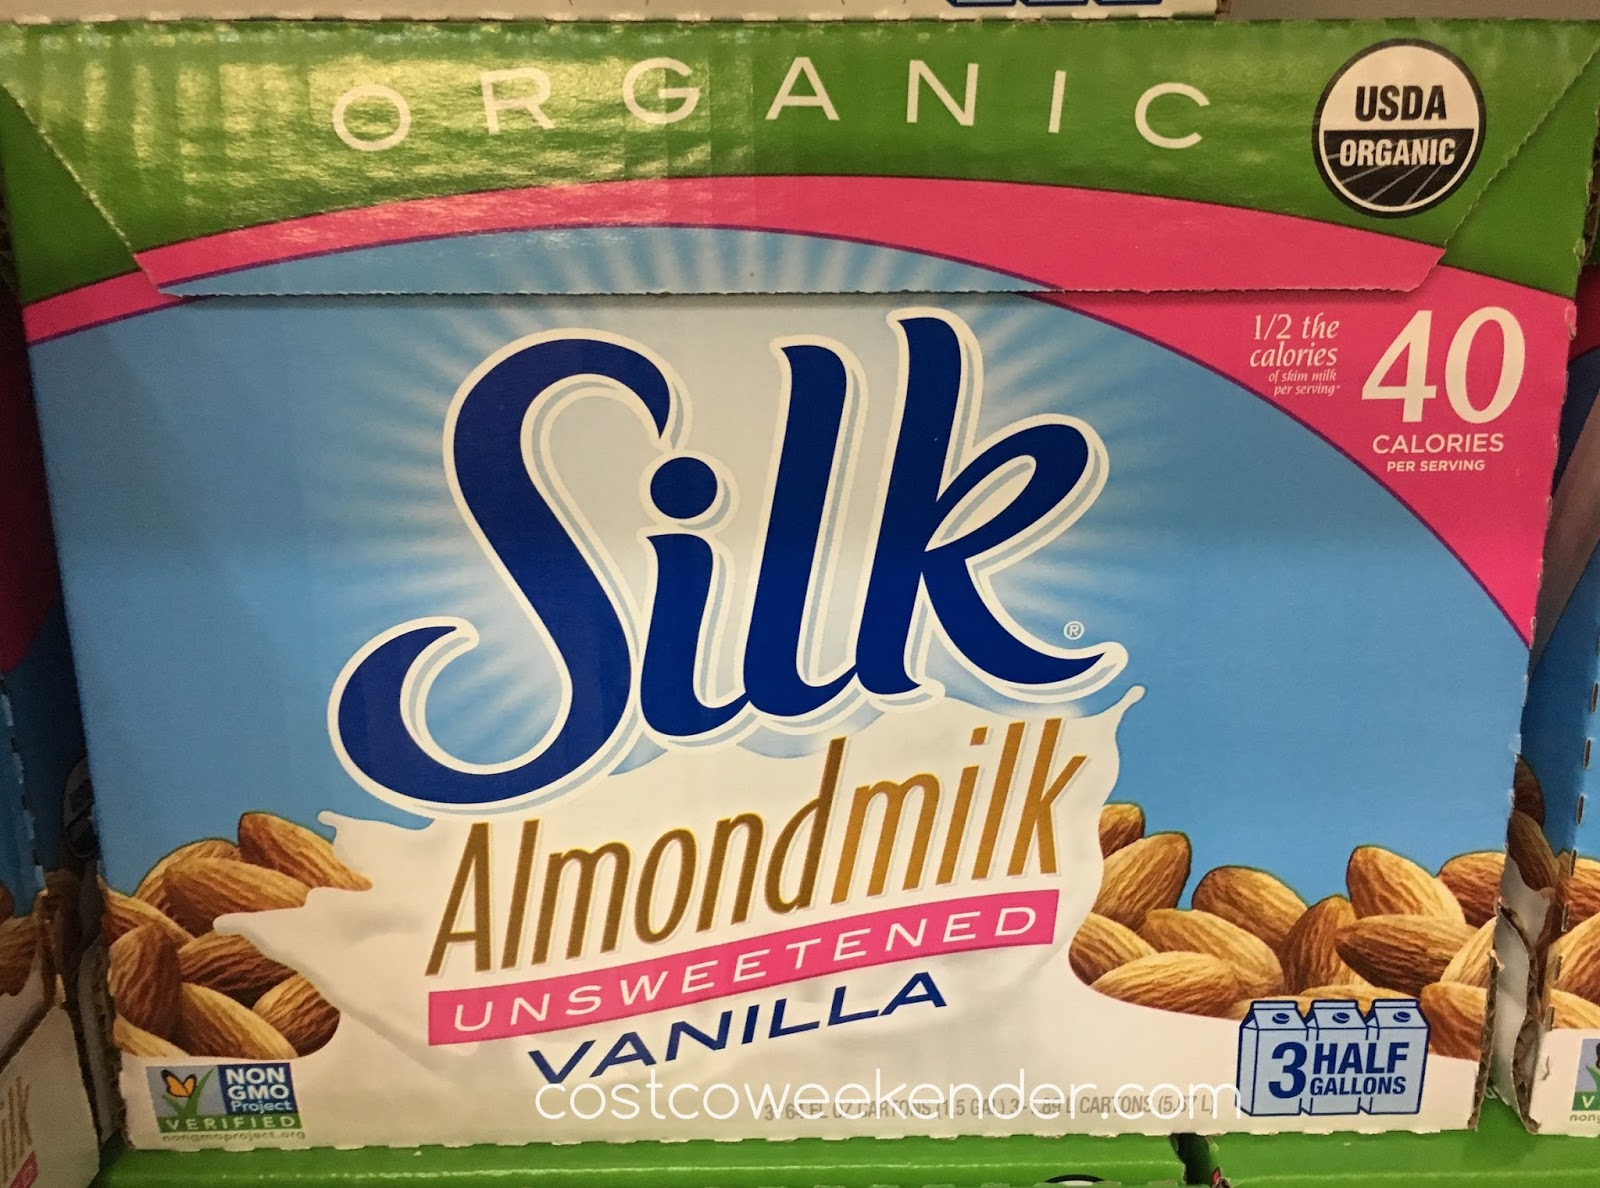 Switch to a healthier alternative with Silk Organic Unsweetened Almond Milk